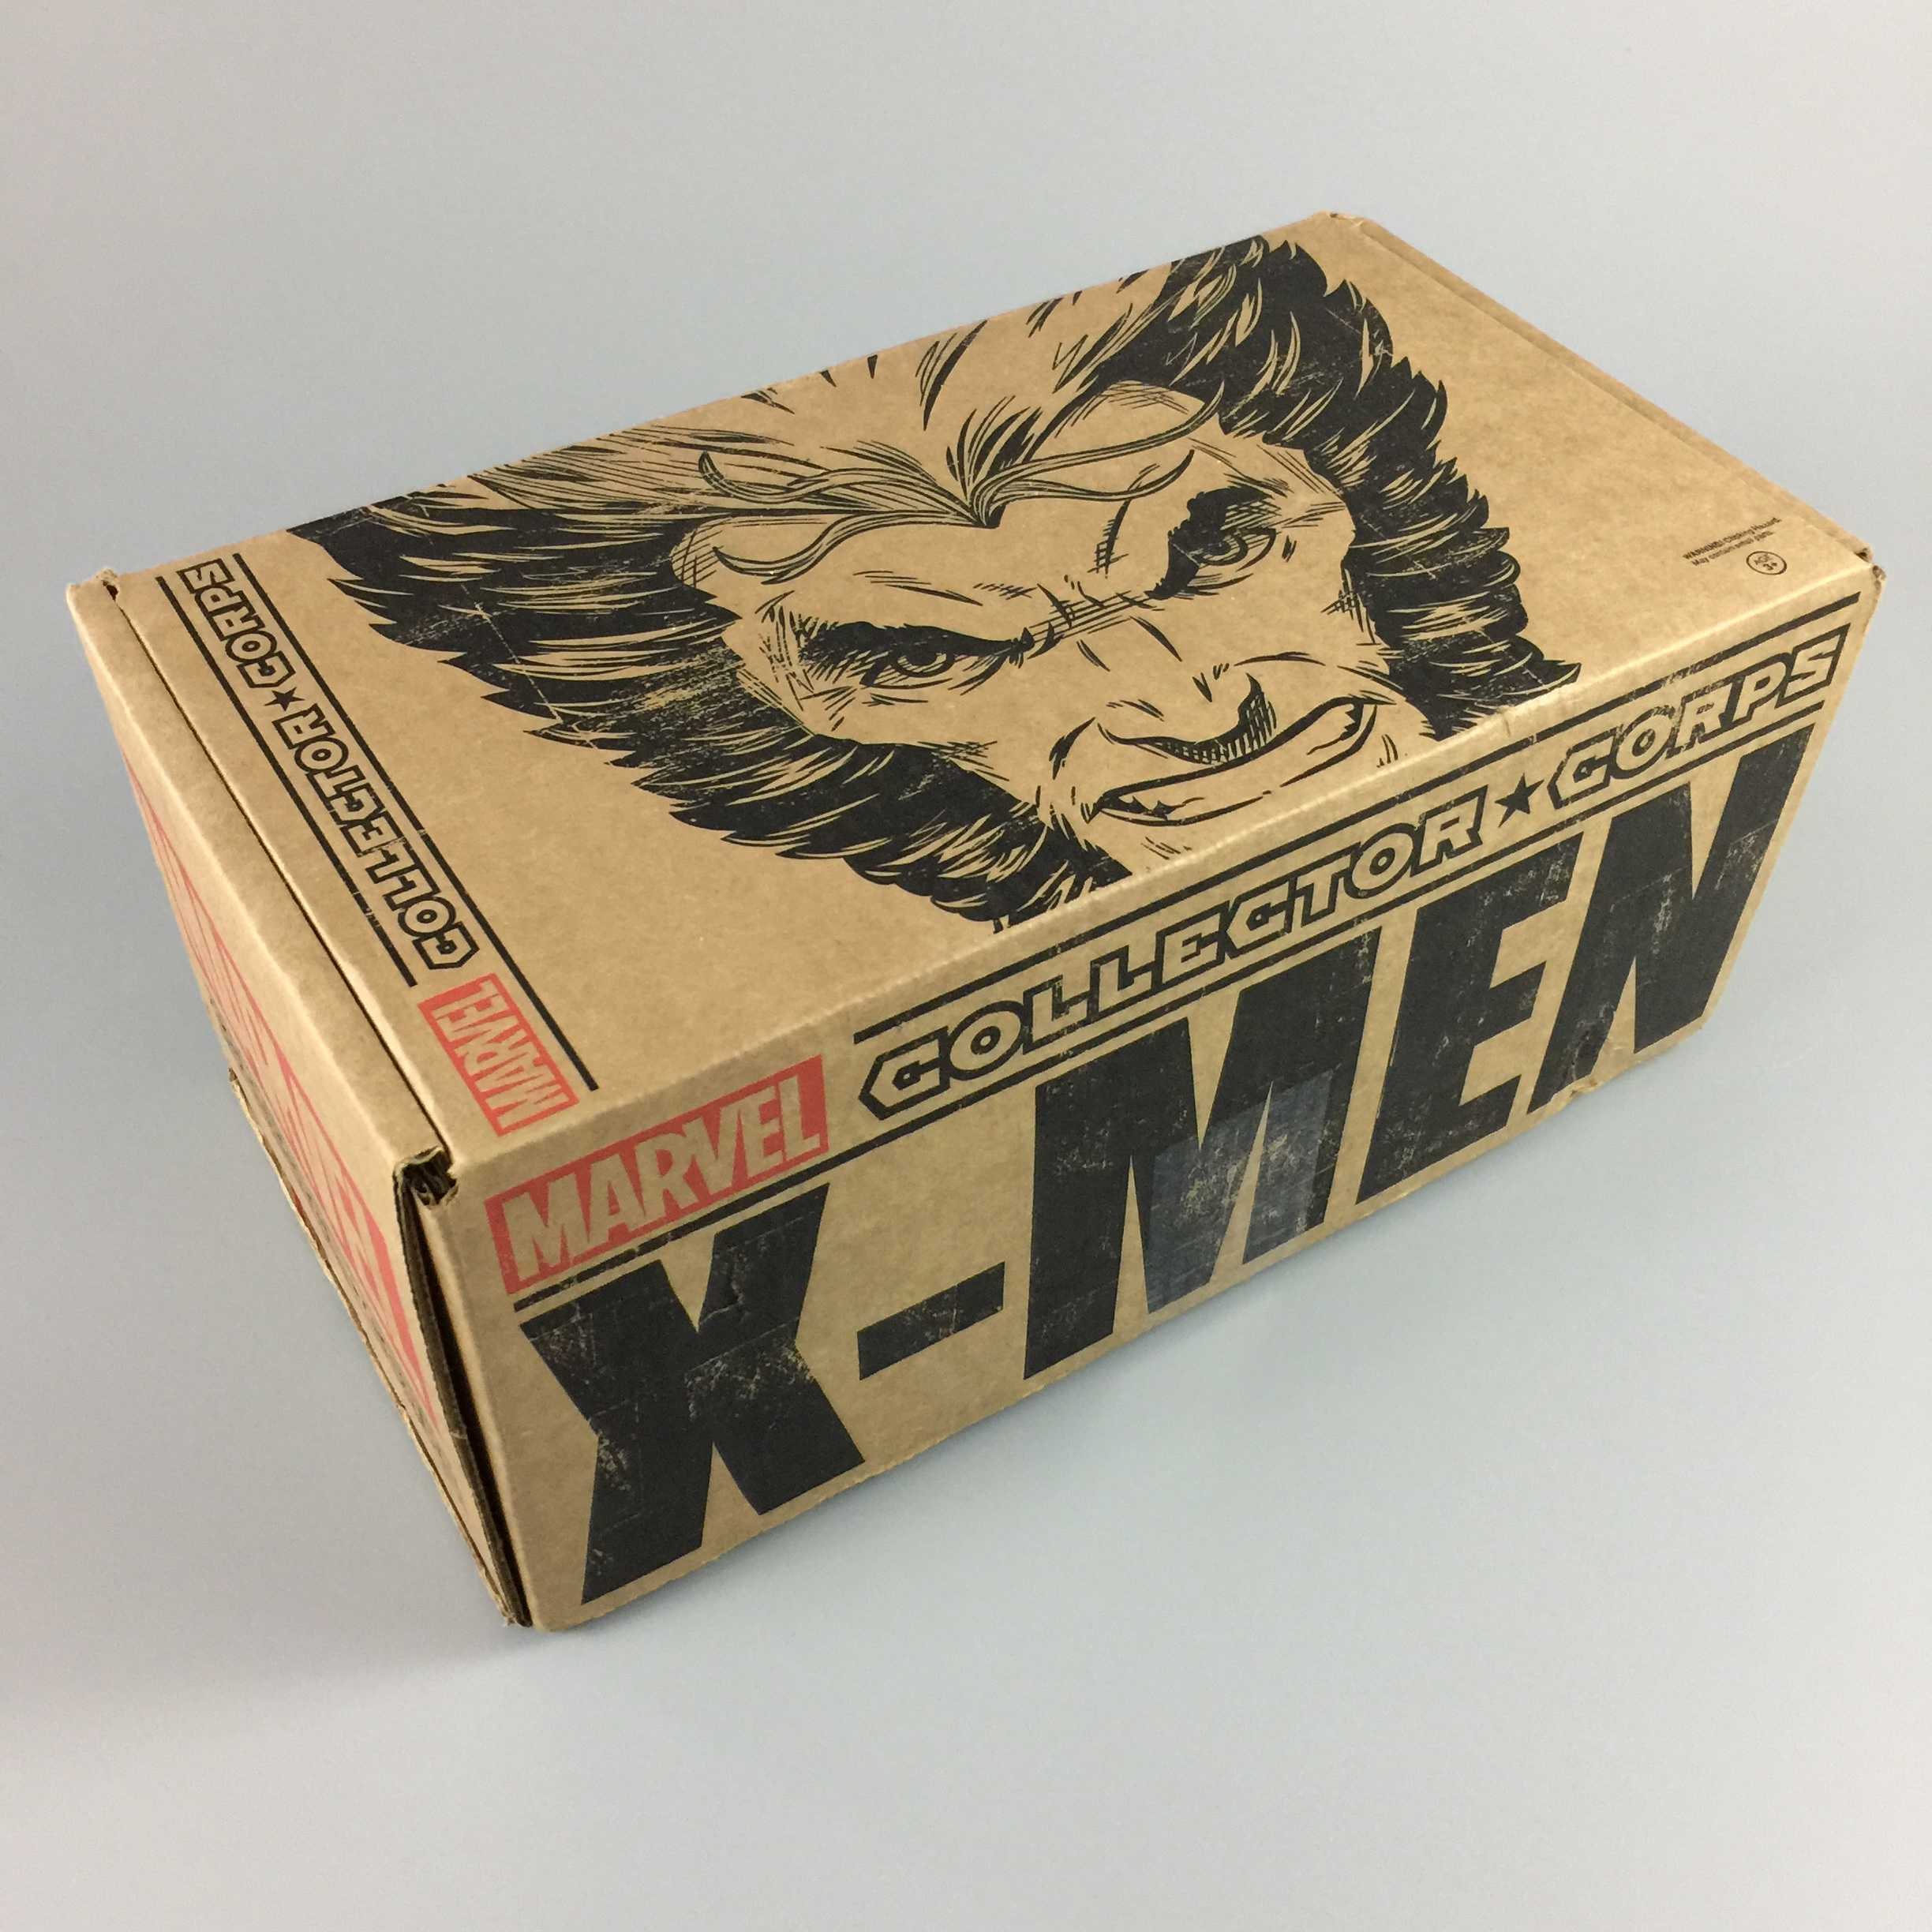 Marvel Collector Corps December 2016 Subscription Box Review – X-Men